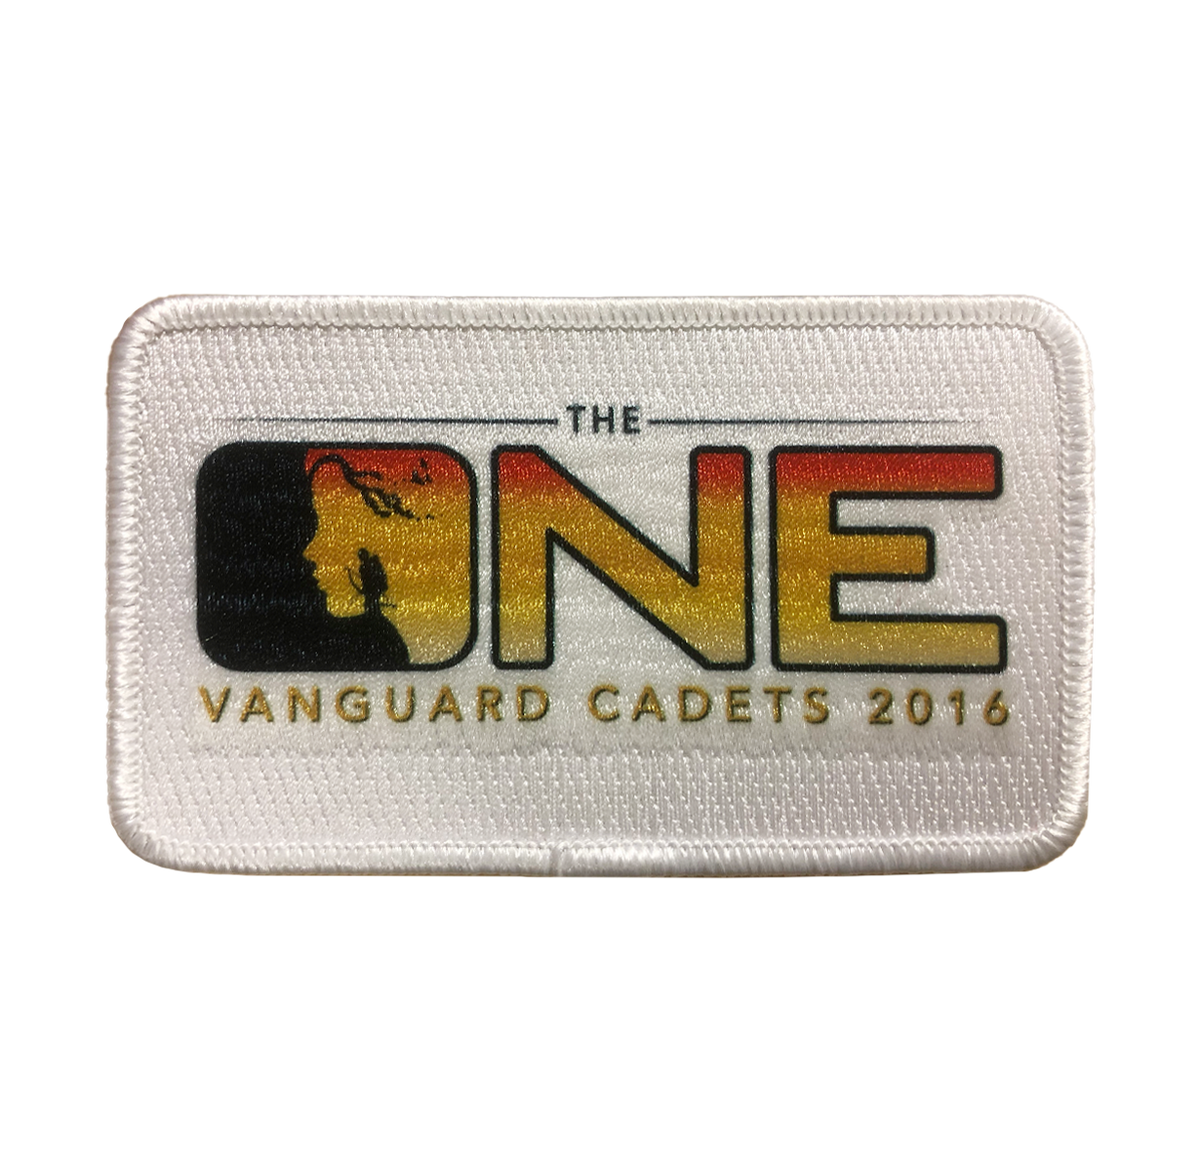 2016 The One Vanguard Cadets Show Patch